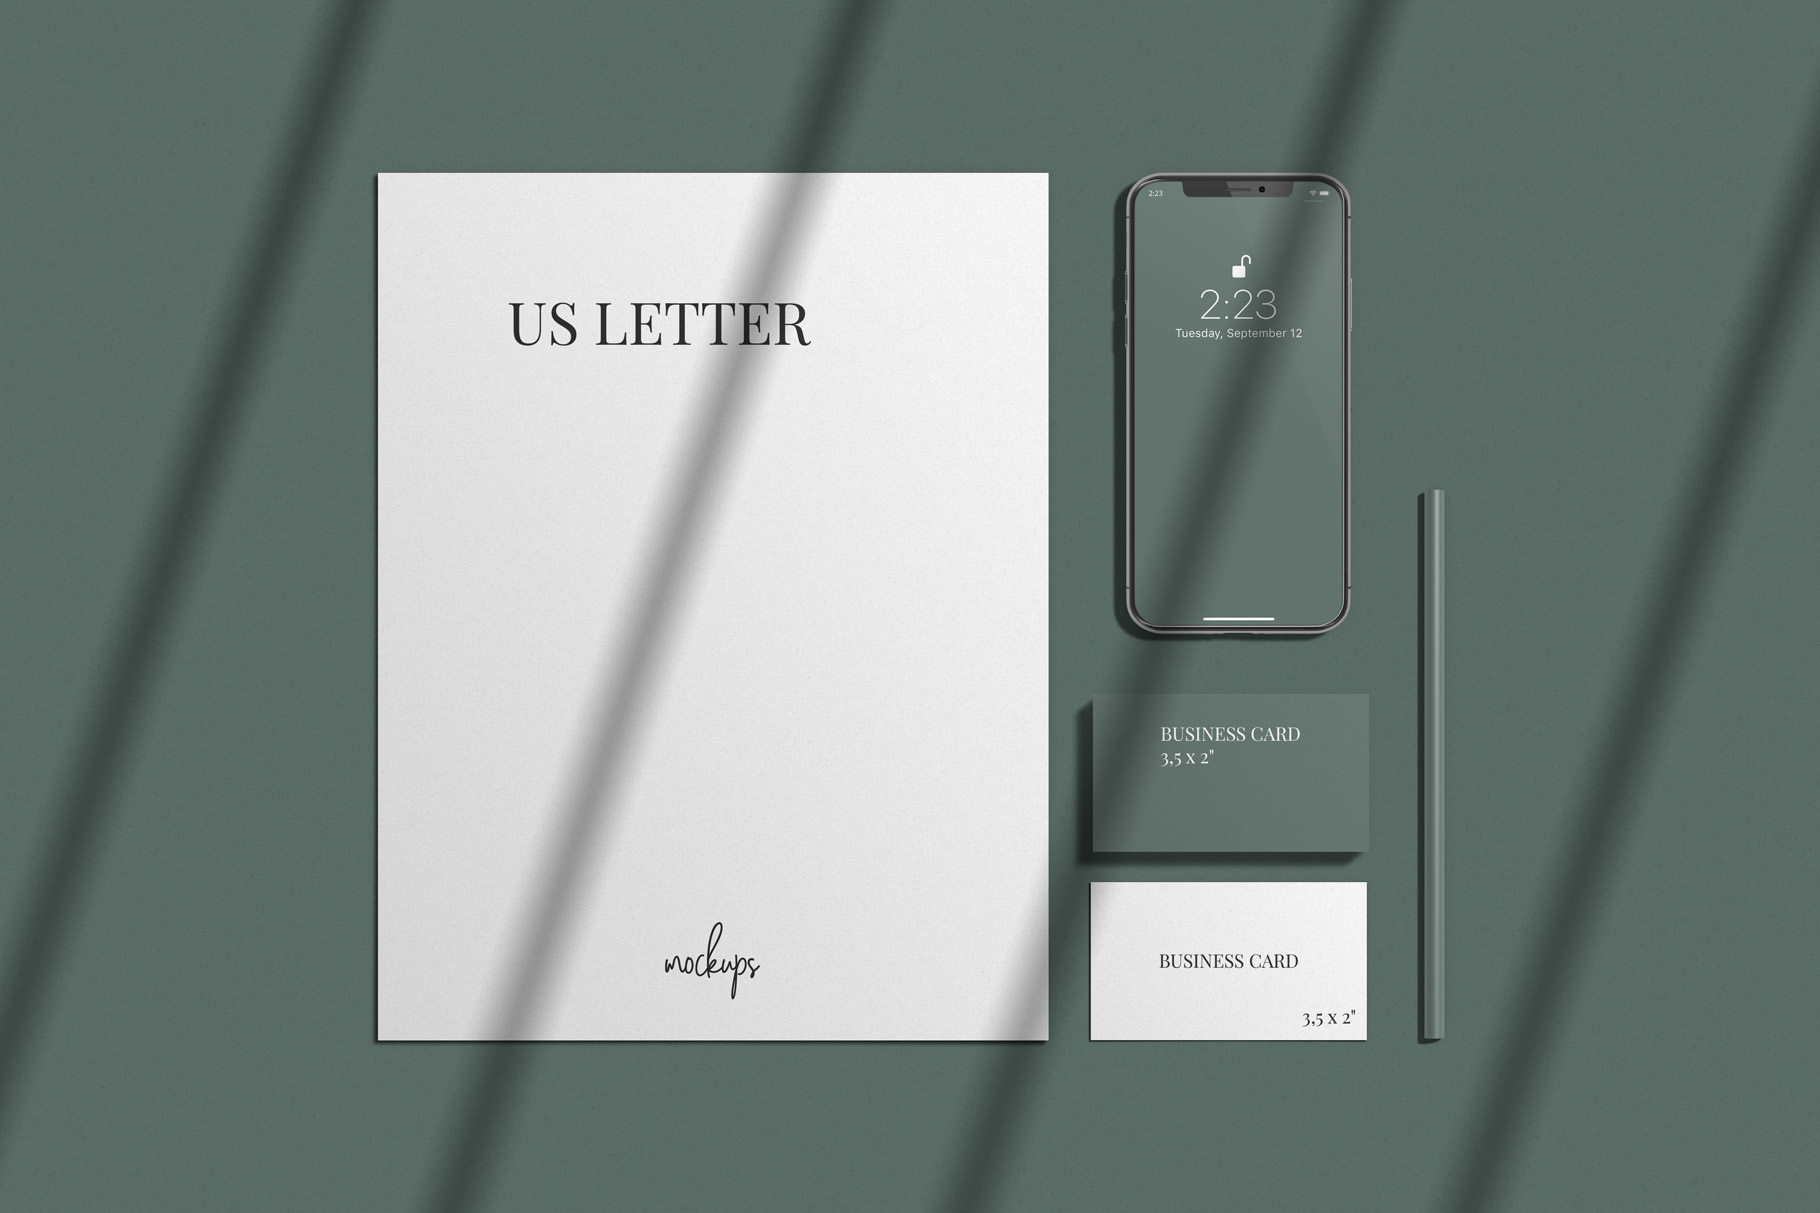 Free-Stationary-Scene-With-iPhone-Mockup-PSD